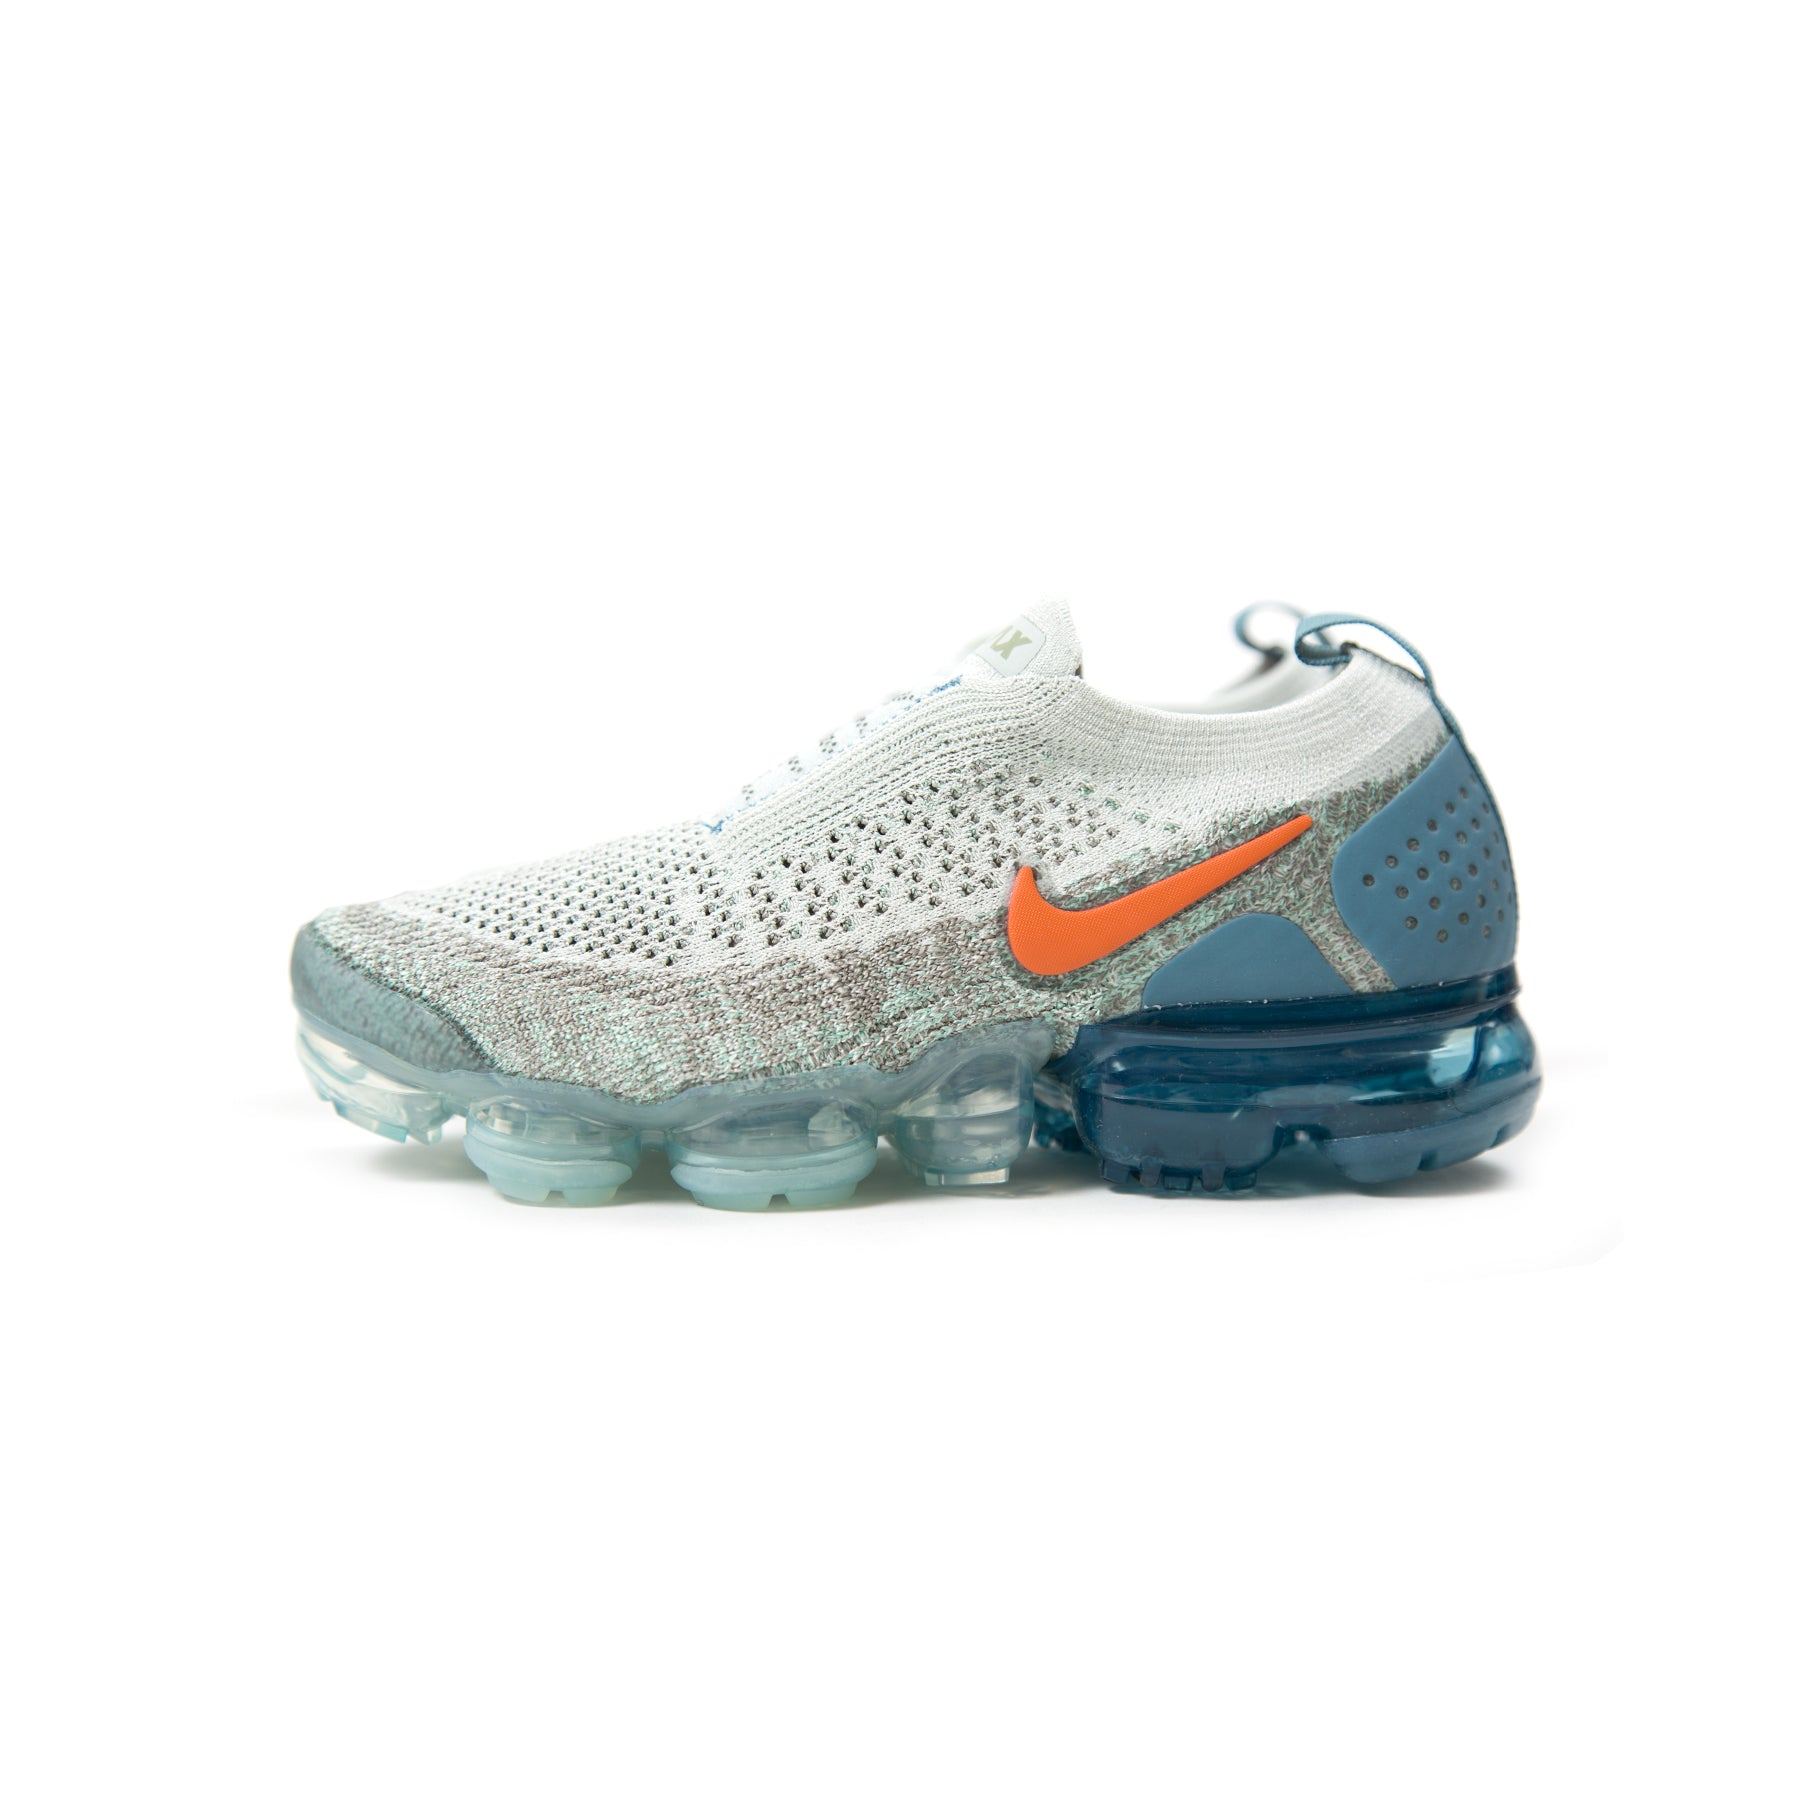 78066166263d ... switzerland conceptsintl nike womens air vapormax flyknit moc 2 light  silver campfire orange d b0449 4df26